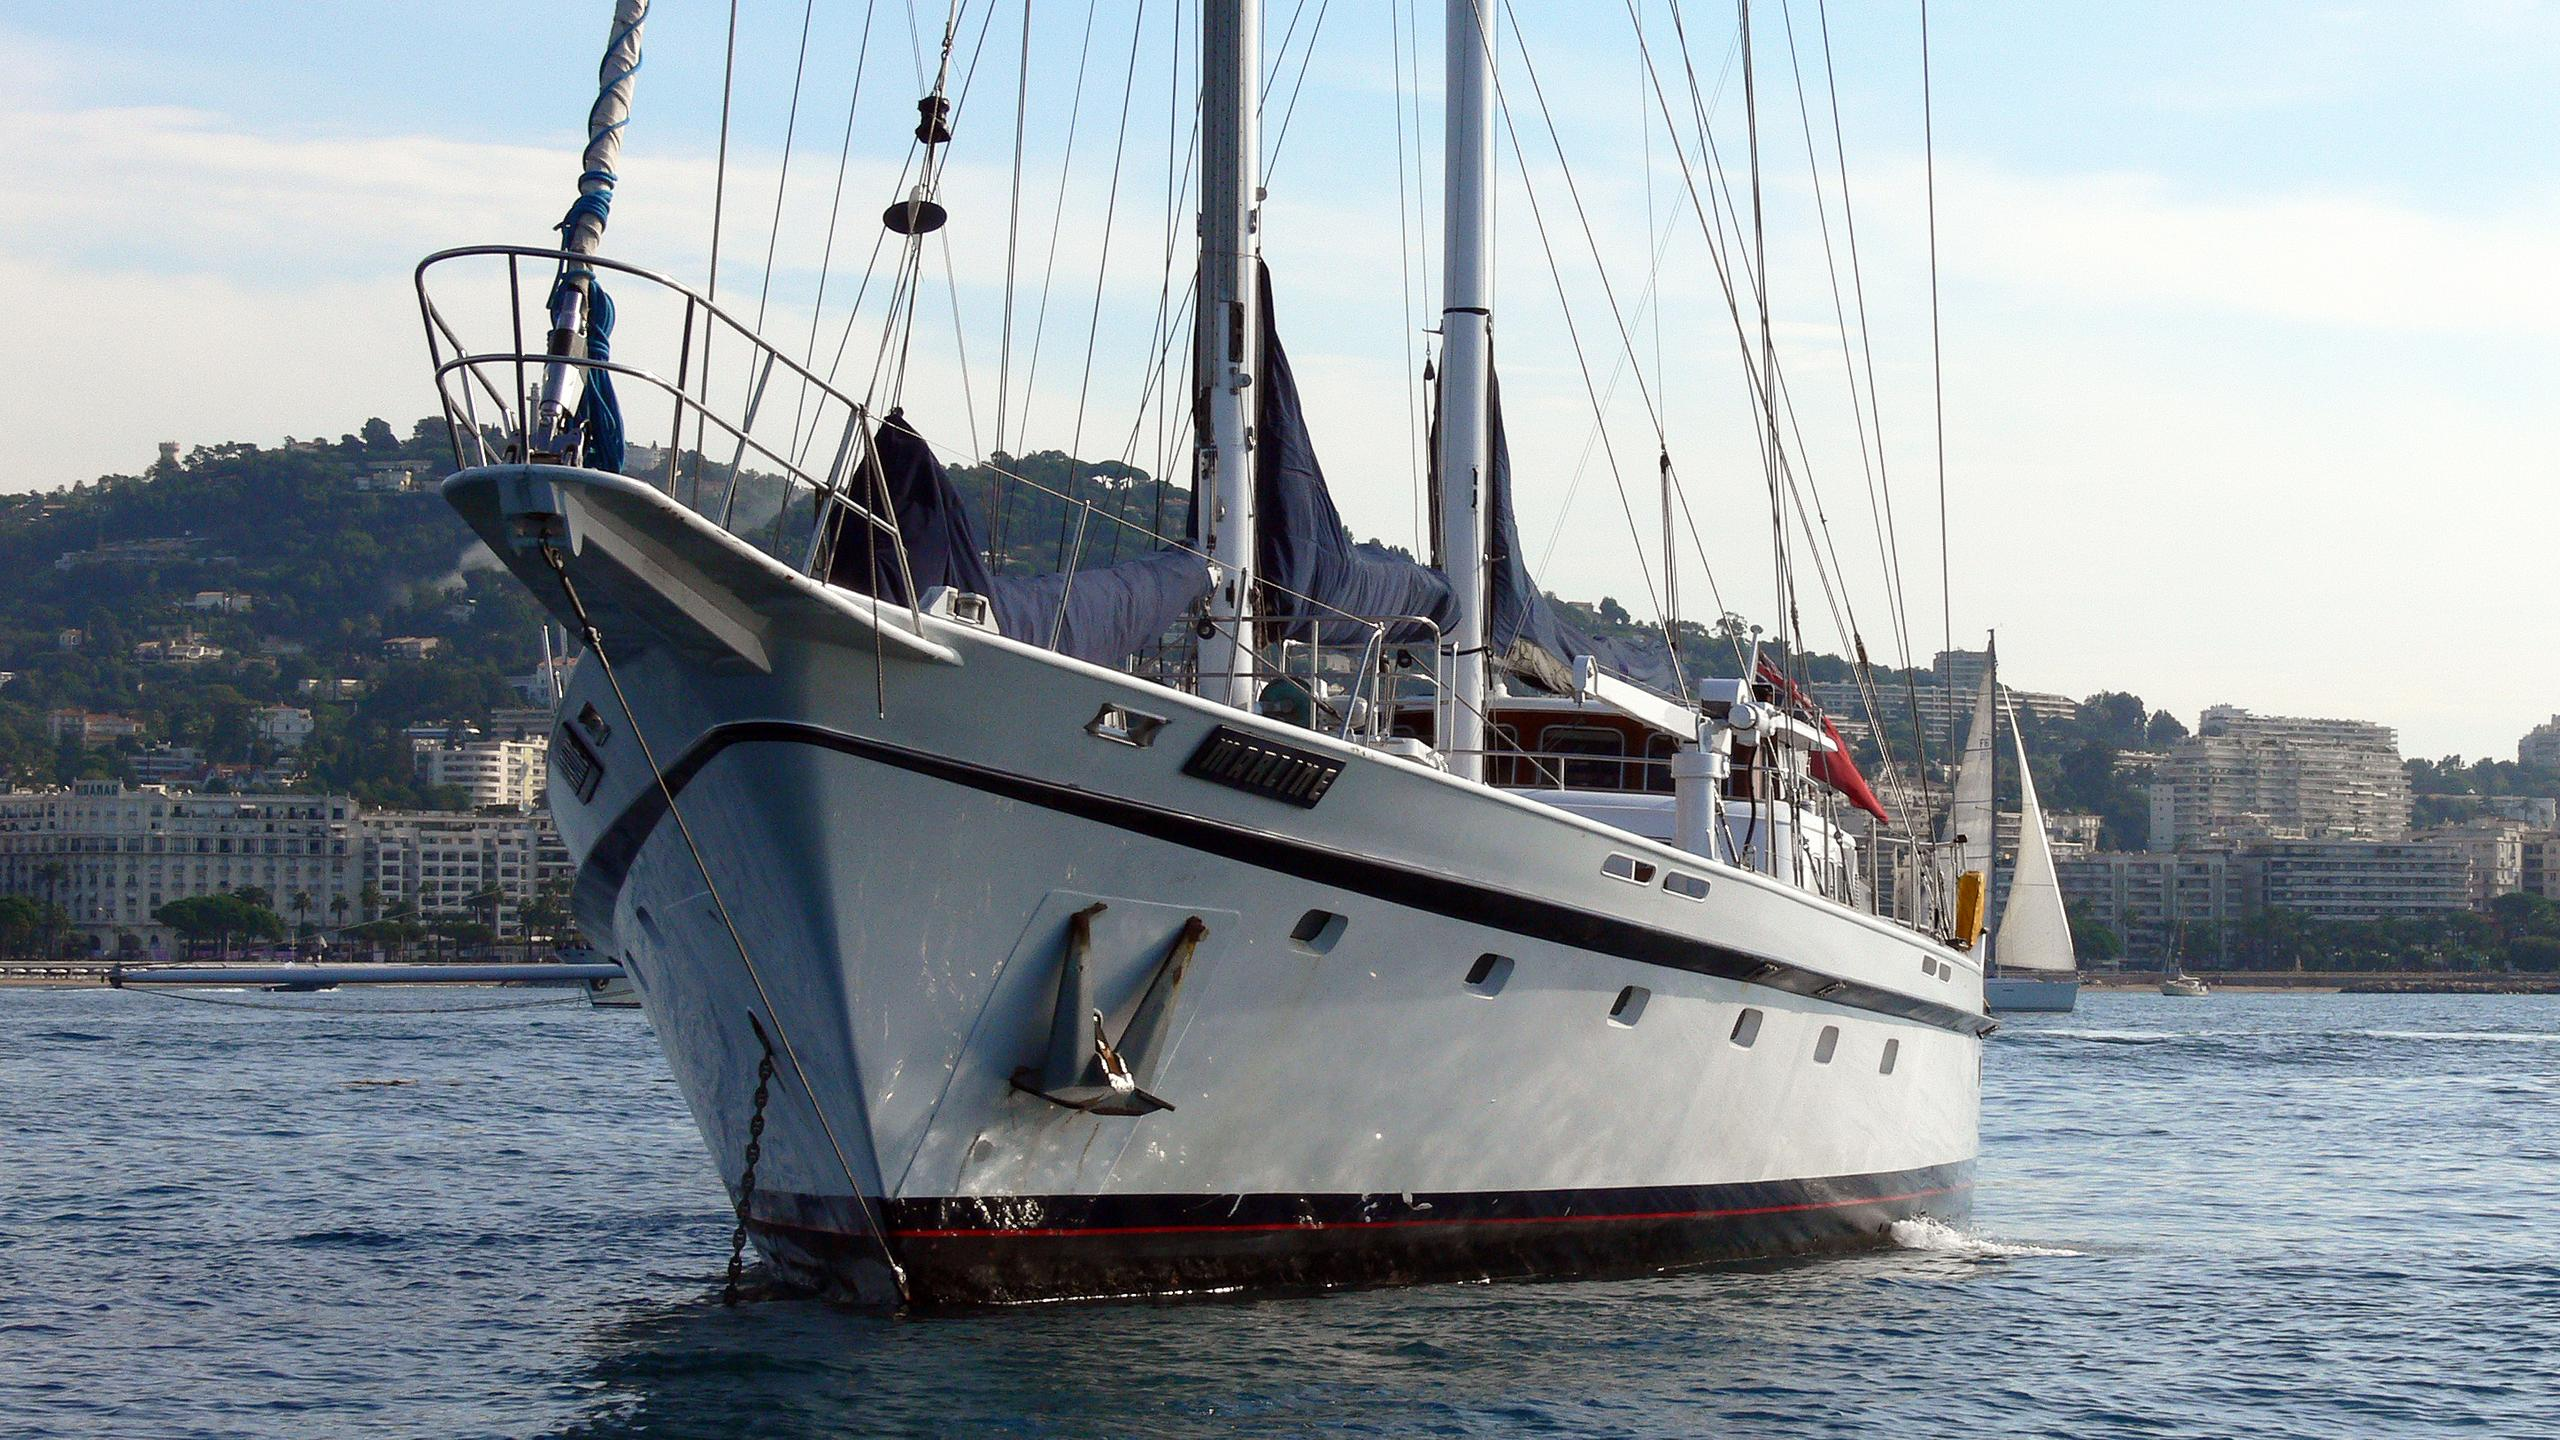 marline-sailing-yacht-cammenga-1974-36m-bow